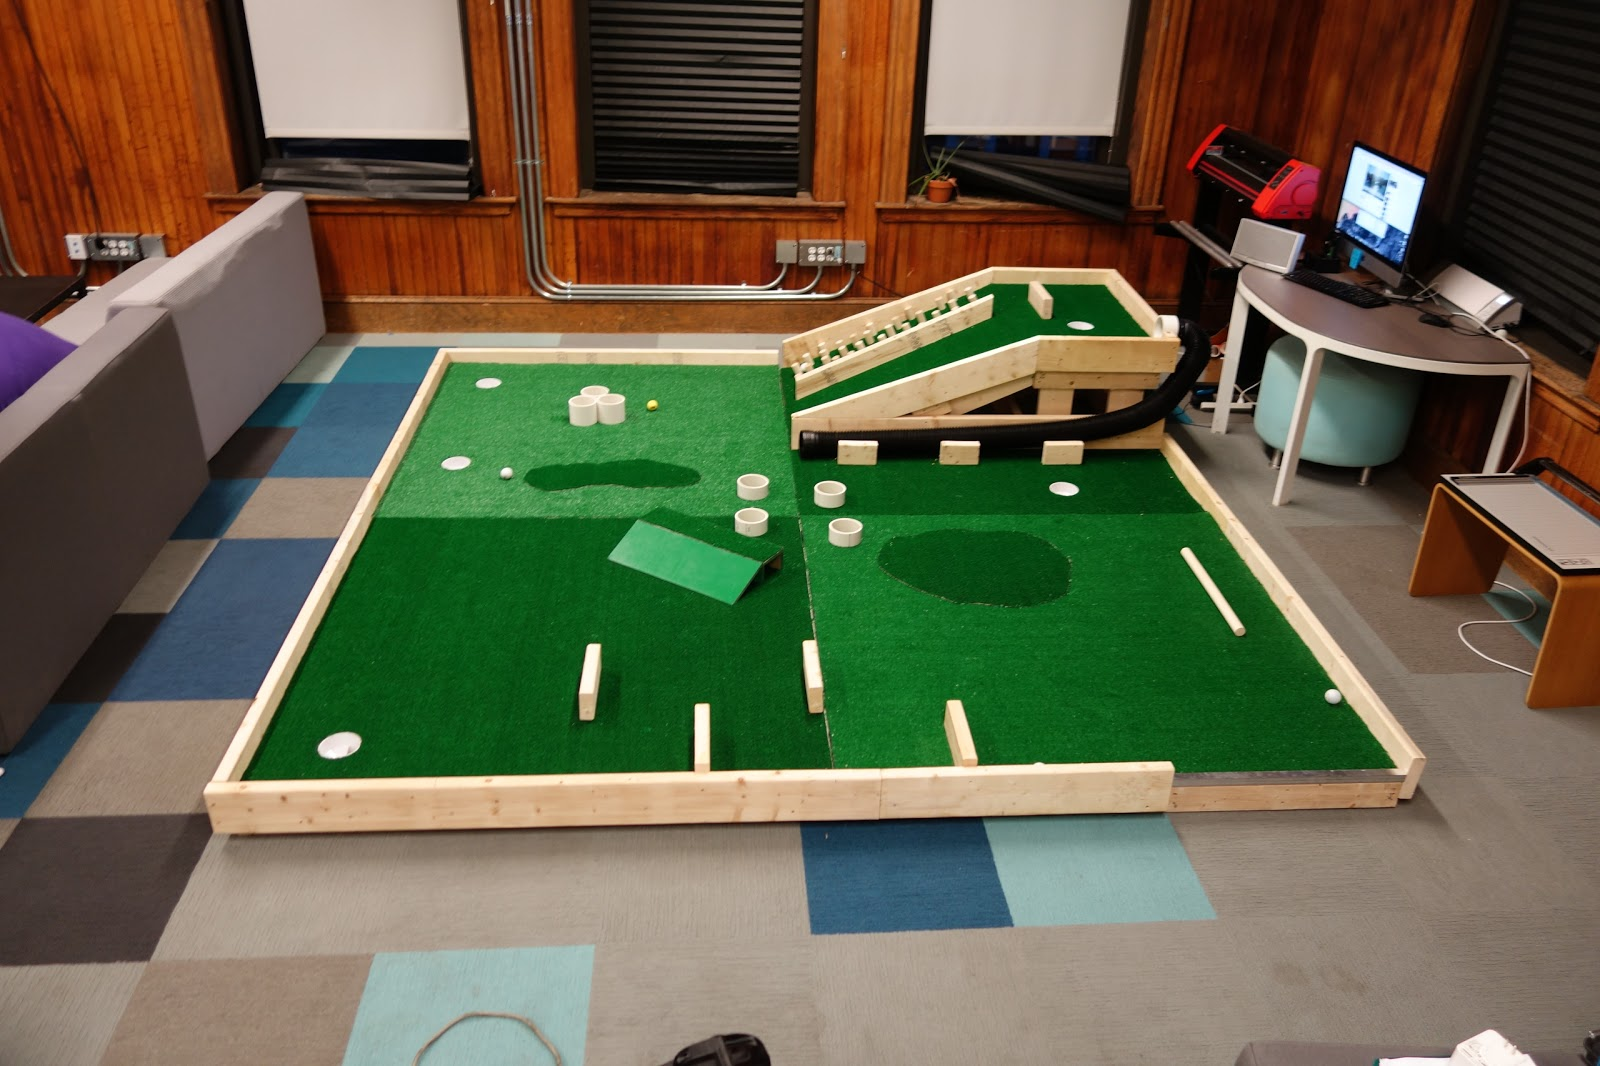 Home Modular Mini Golf Course - DIY Indoor | The Invention Factory